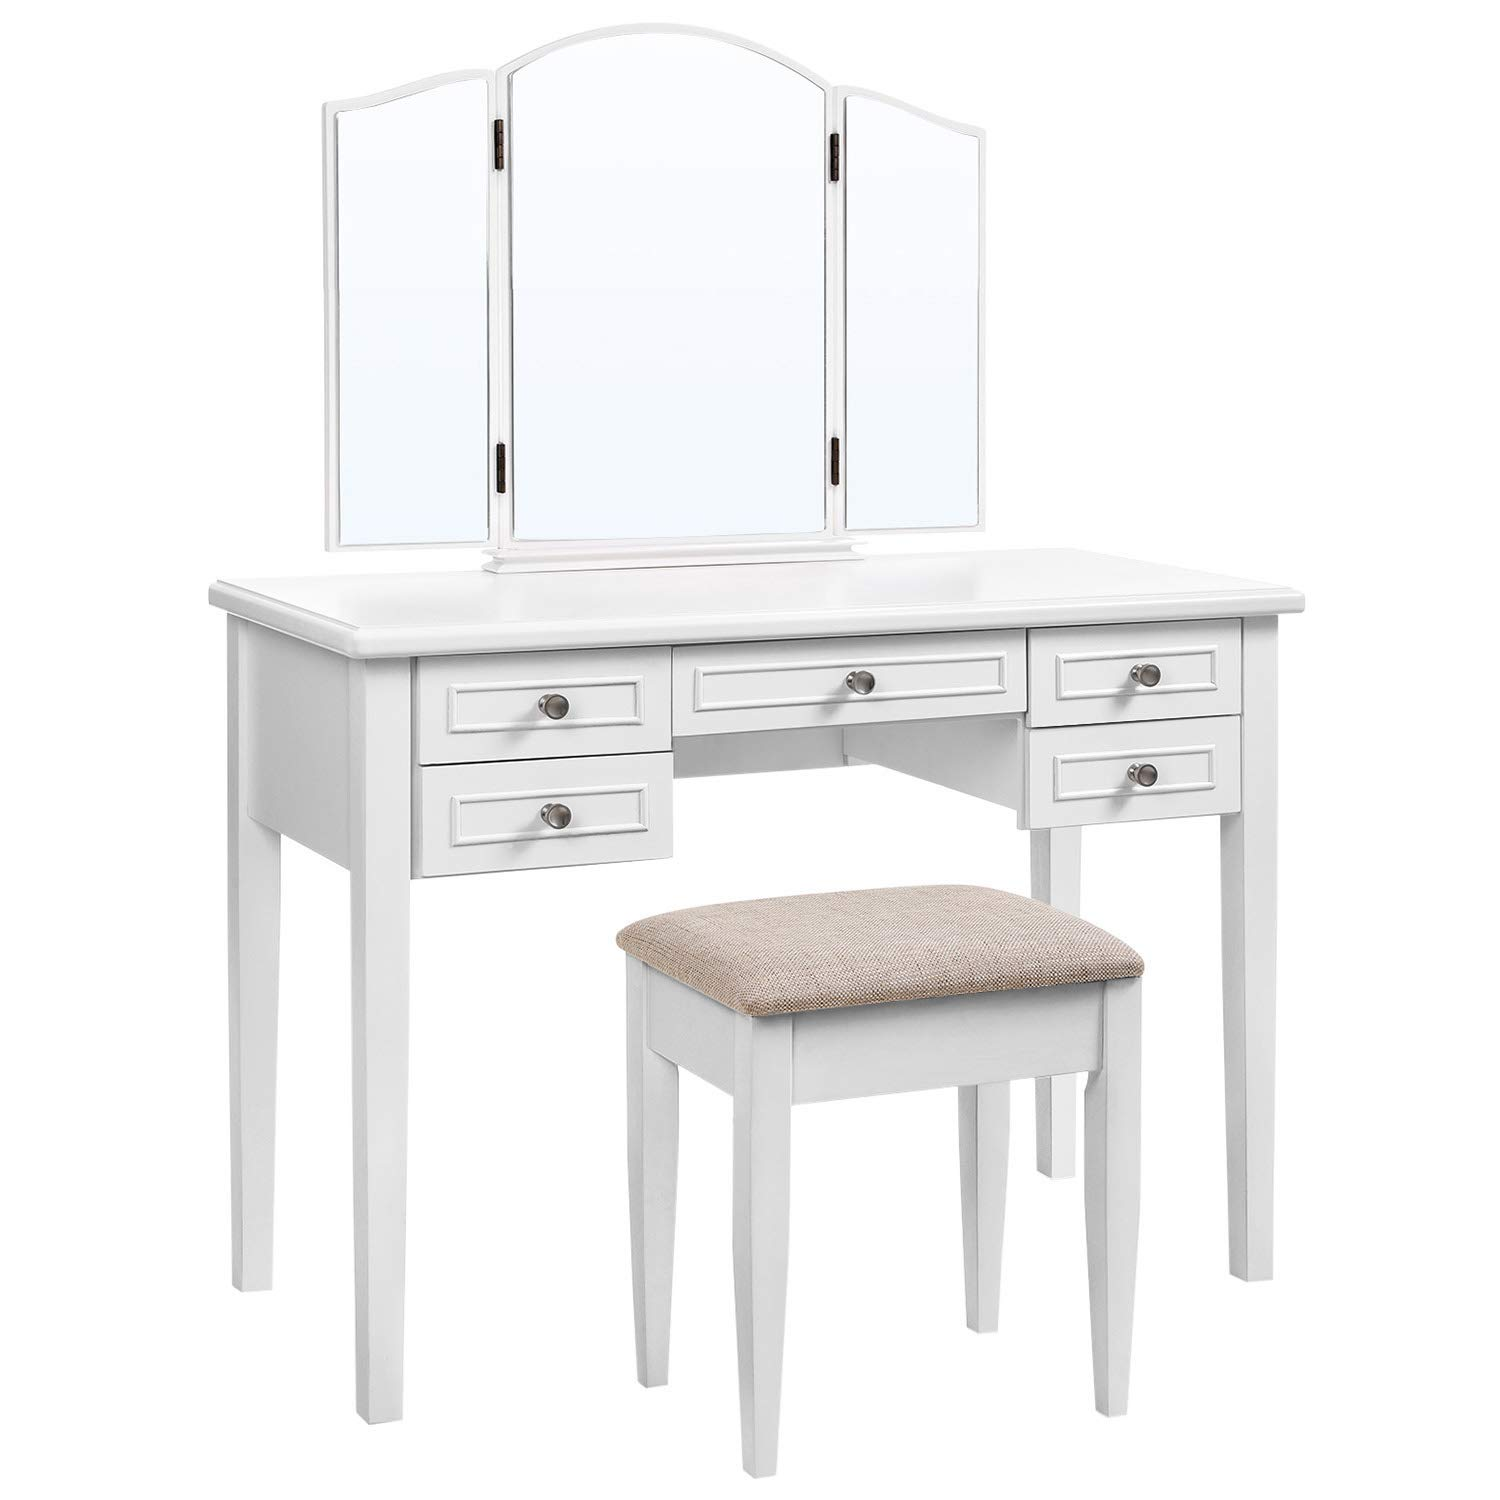 VASAGLE Vanity Set with Tri-Fold Mirror, Dressing Table with 5 Drawers, Desk with 1 Stool, Makeup and Cosmetics Storage, Multifunctional, Easy to Assemble, White URDT107WT